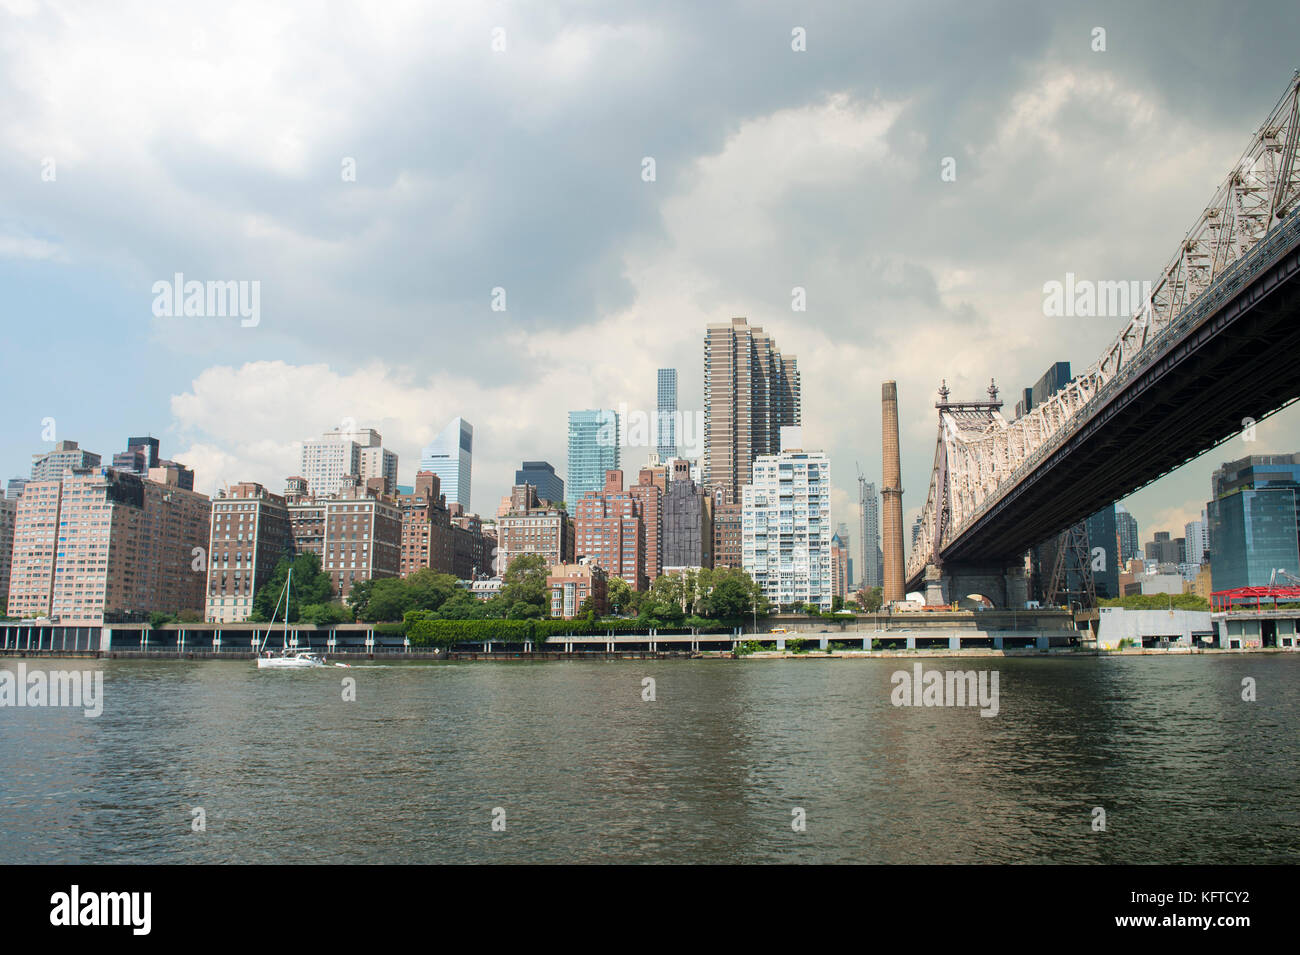 New York City and Queensboro Bridge skyline viewed across the East River from Roosevelt Island waterfront. - Stock Image